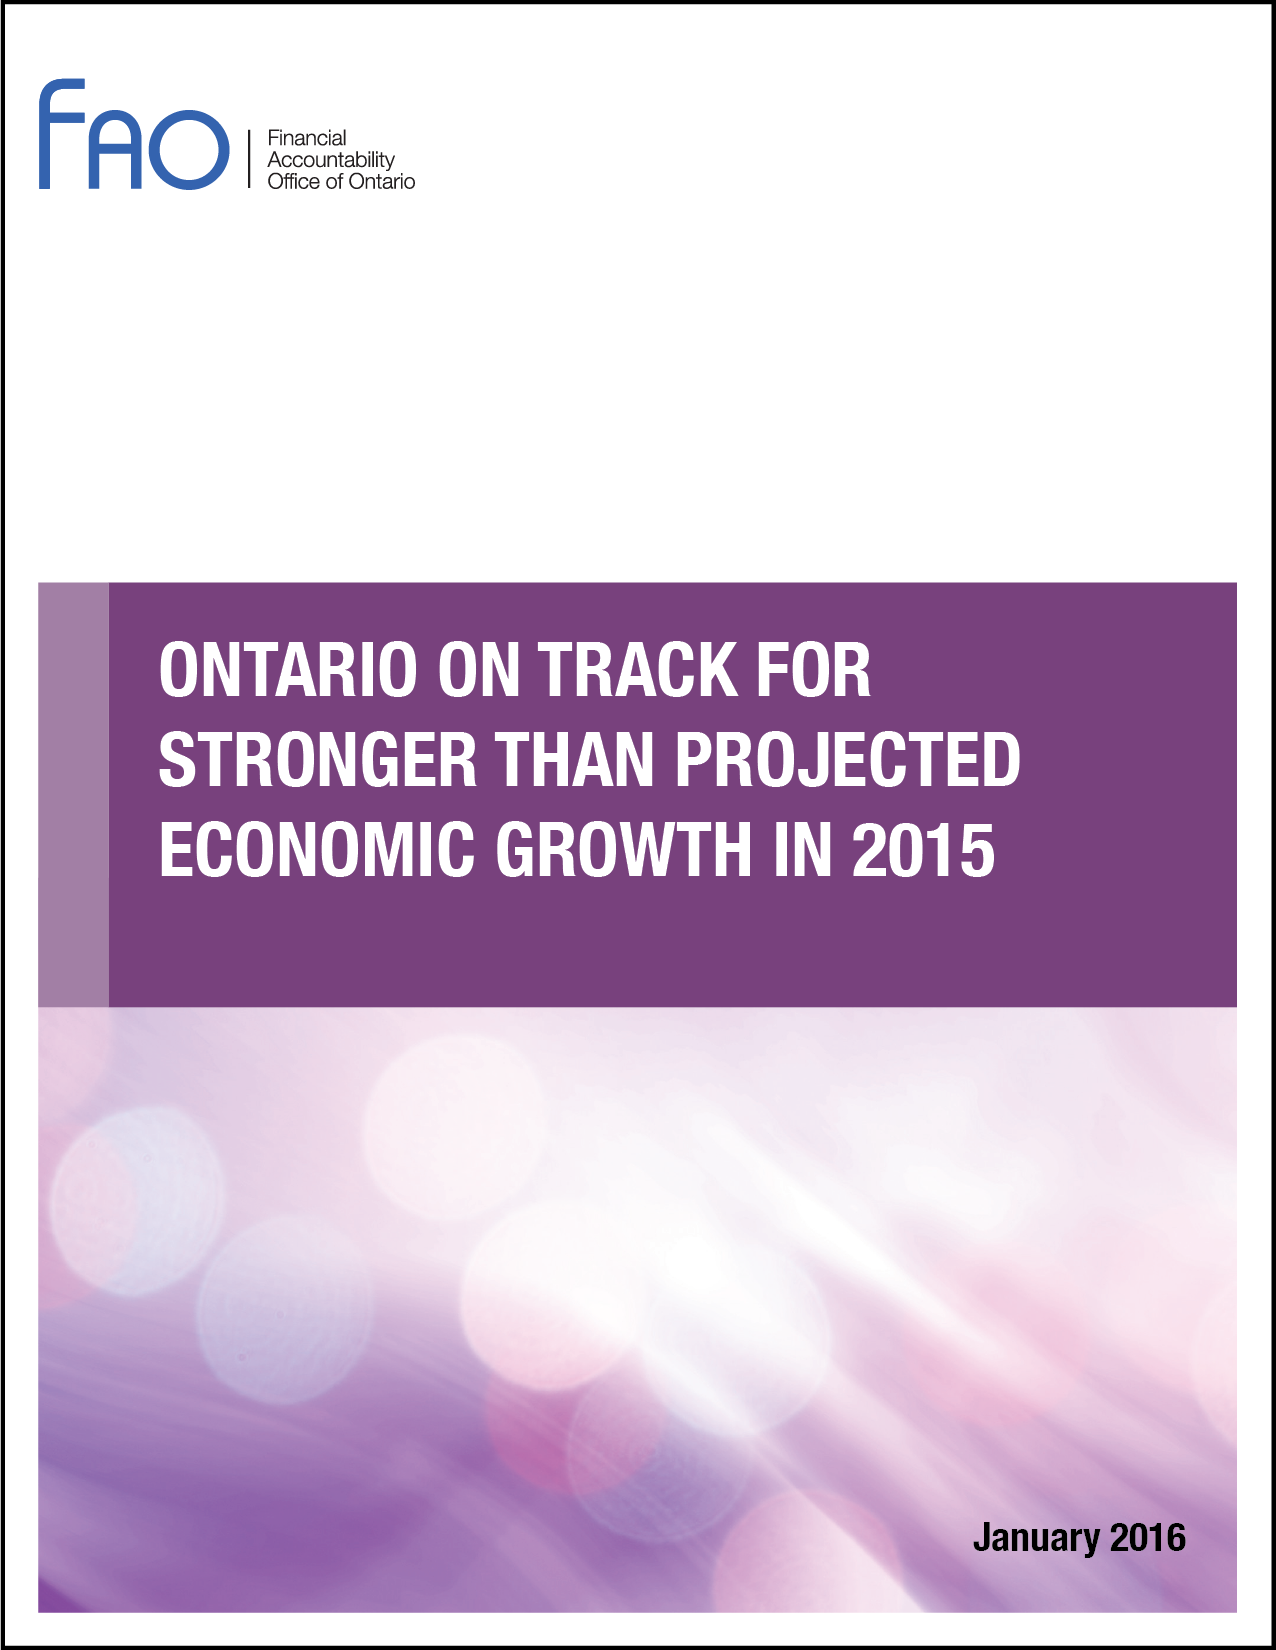 Ontario on Track for Stronger than Projected Economic Growth in 2015